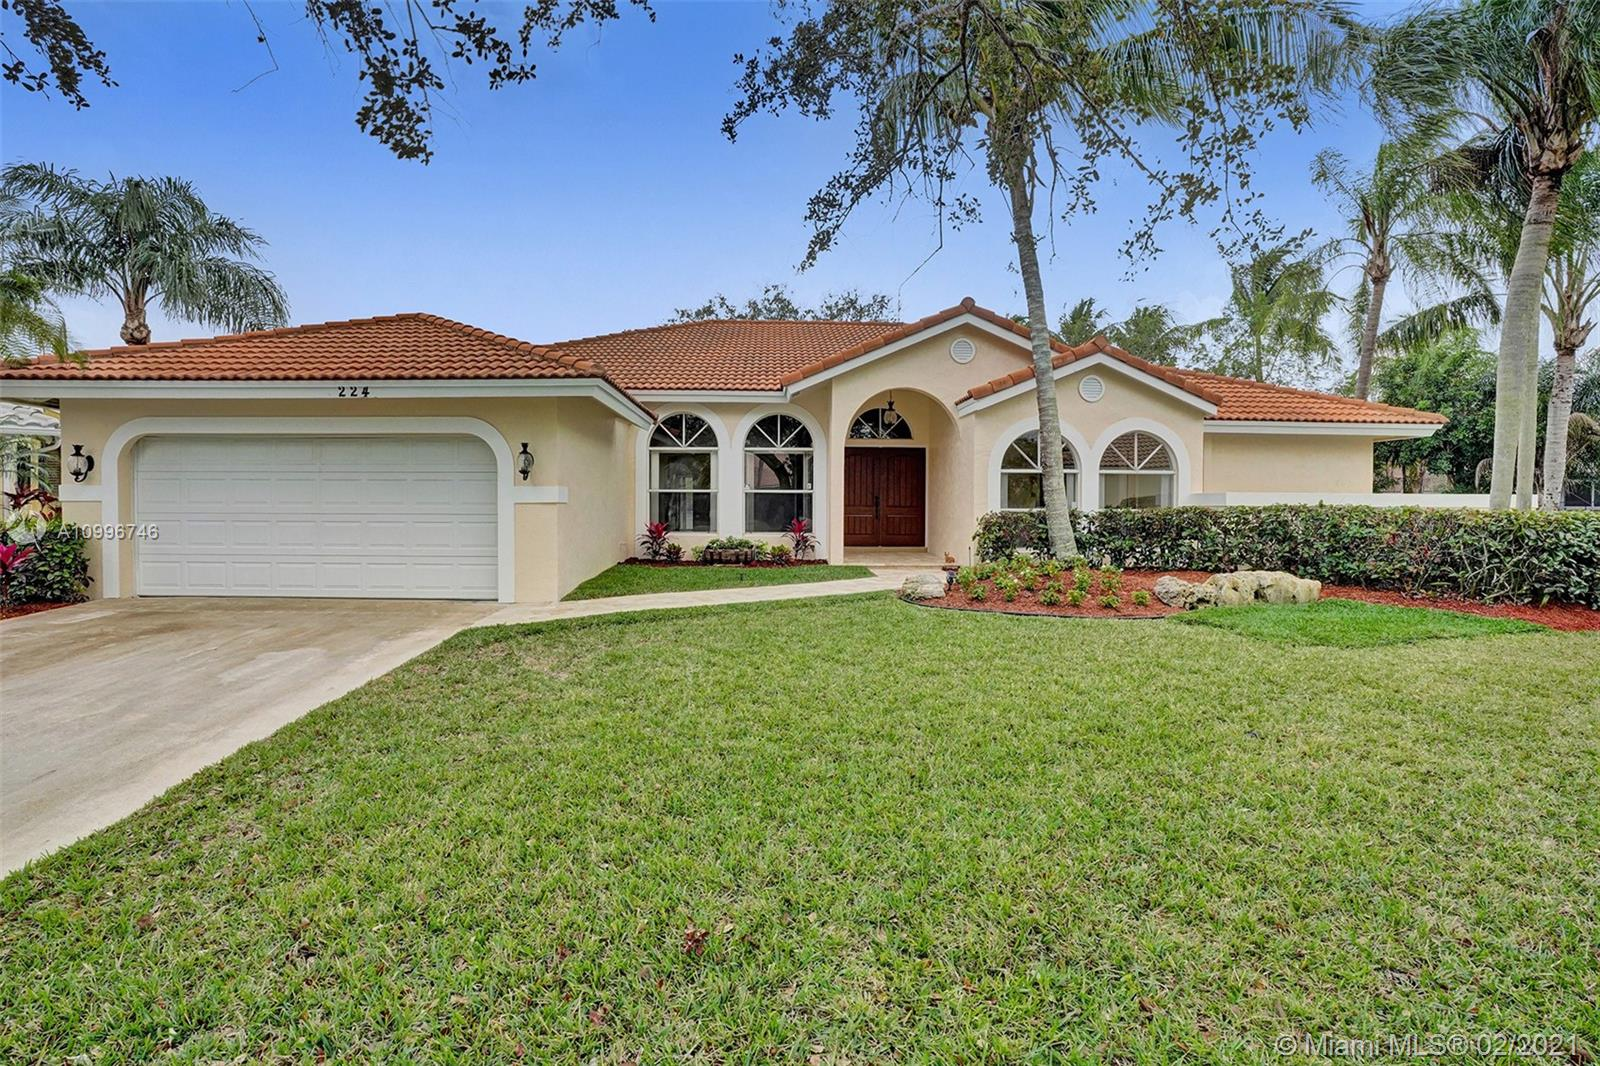 WOW! GREAT BUY ON THIS FUTURA MODEL WITH OVER 2,800 SQ. FT. LIVING AREA ON A .38 ACRE CUL-DE-SAC WATERFRONT LOT WITH A HUGE YARD IN RED HOT WEST GLEN! NEWER S-TILE ROOF 2011! FRESHLY PAINTED IN & OUT! BRAND NEW CARPET 2021 IN LIVING, DINING, FAMILY, AND ALL 4 BEDROOMS! NEW HURRICANE IMPACT FRONT DOORS, GARAGE PEDESTRIAN DOOR, AND MASTER BATH CABANA DOOR 2018! PLEASE SEE FACT SHEET!